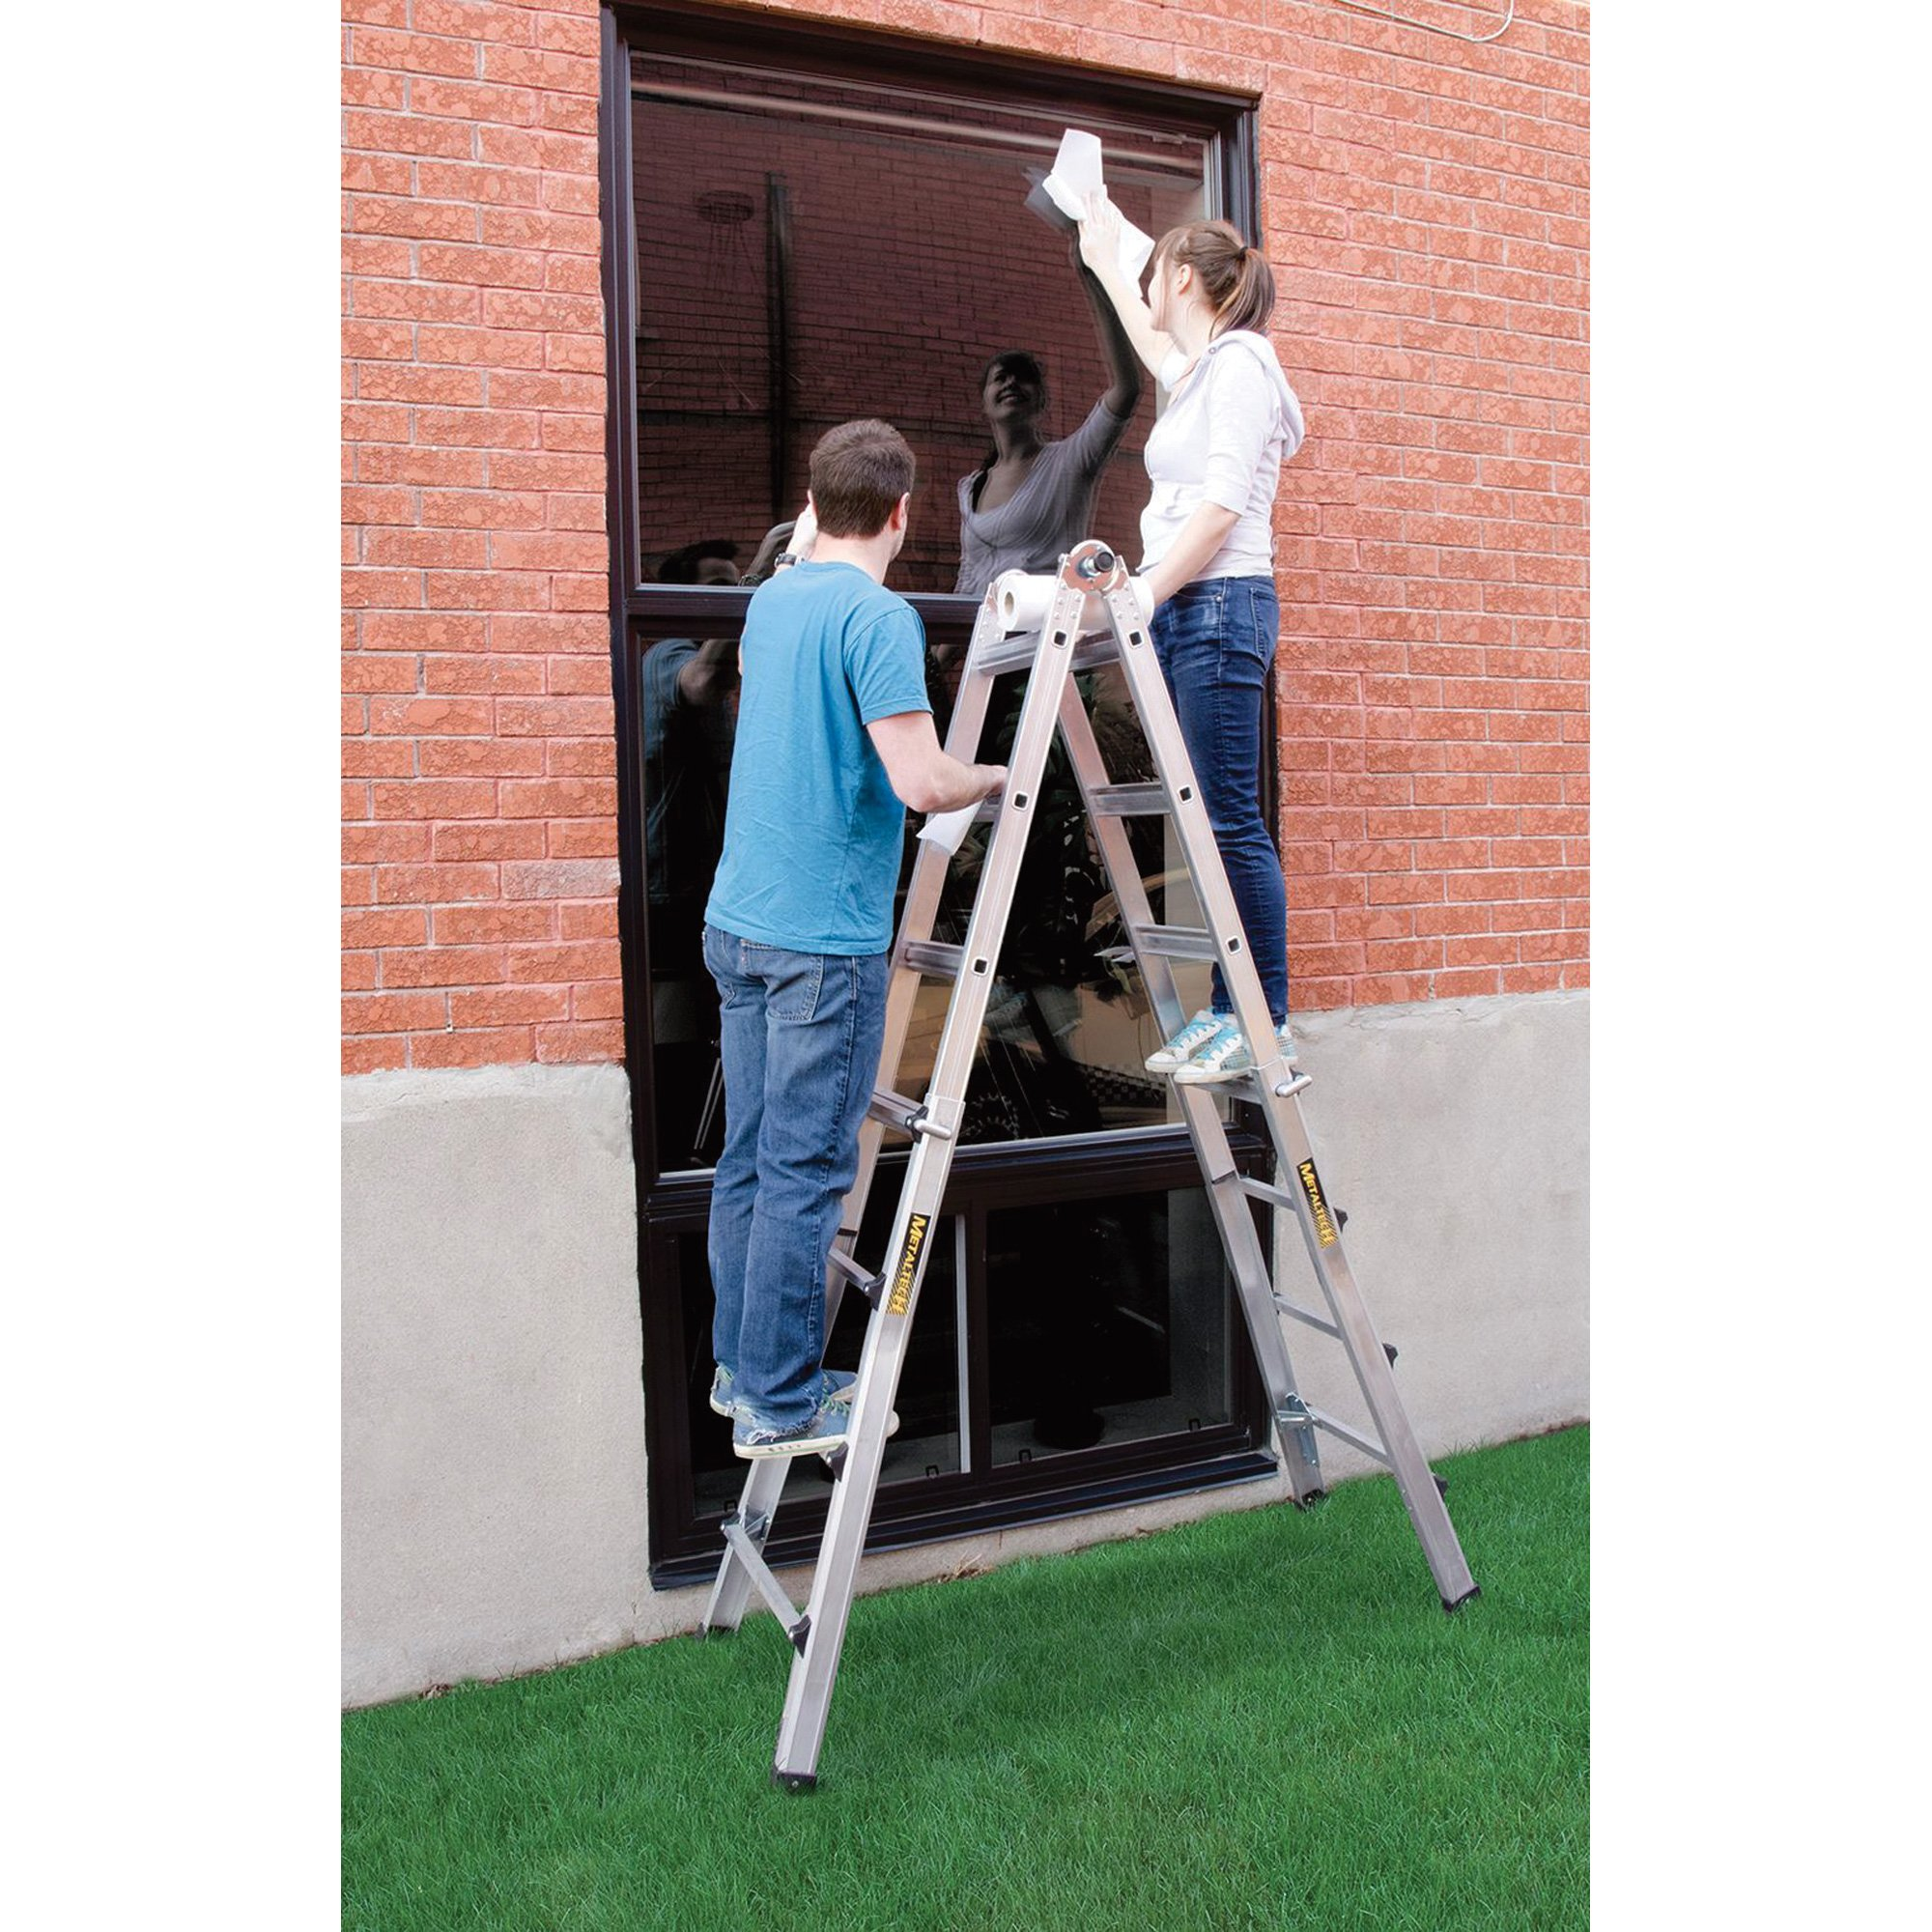 Metaltech E-MTL7100ST 17 Ft. Aluminum Telescoping Multi-Position Ladder with 300 Lb. Load Capacity